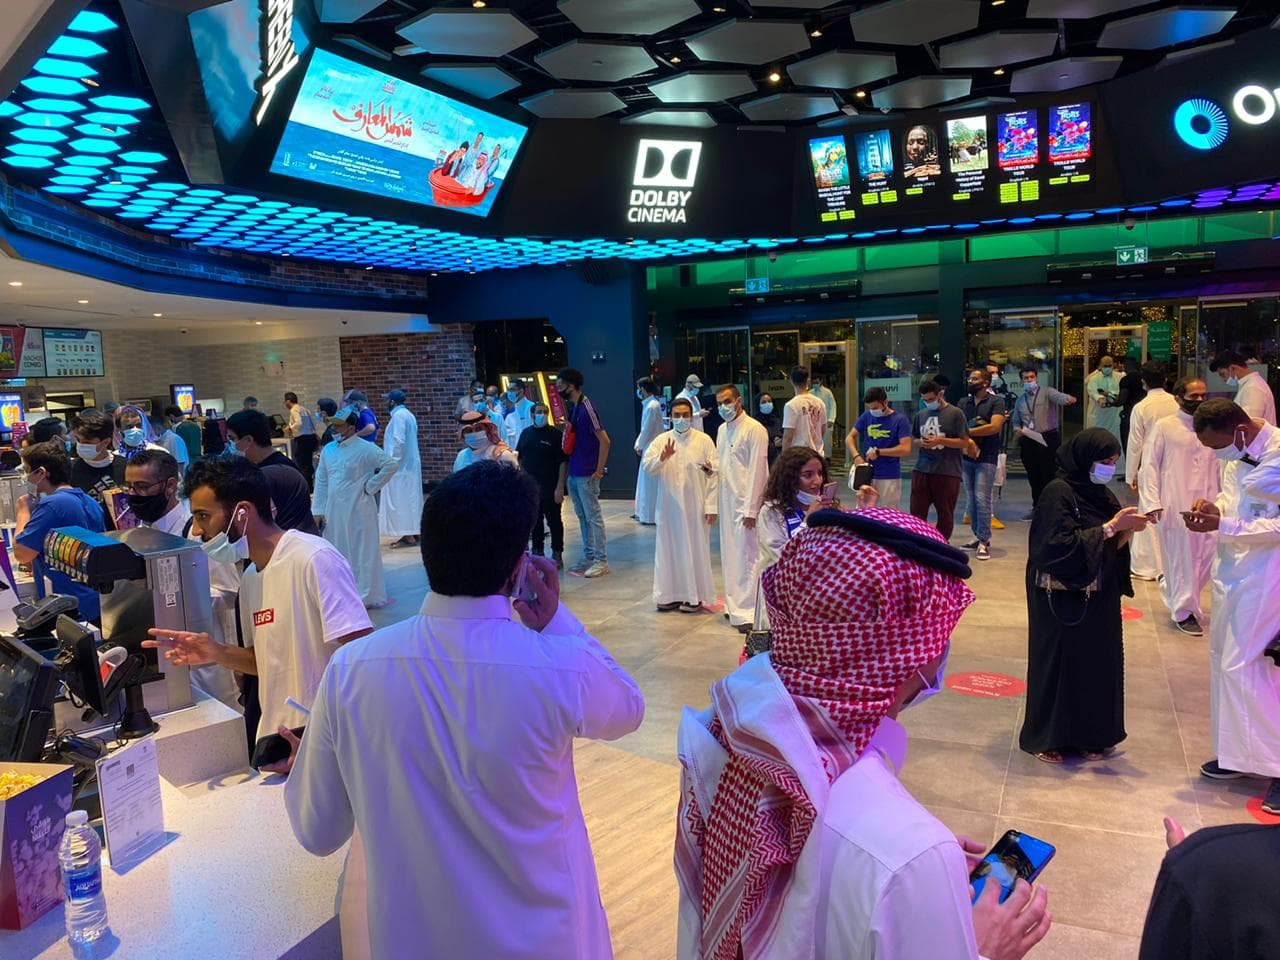 Saudi Pro League broadcasts Riyadh derby in movie theatres after signing landmark agreement with MUVI CINEMAS to showcase key remaining matches of the season